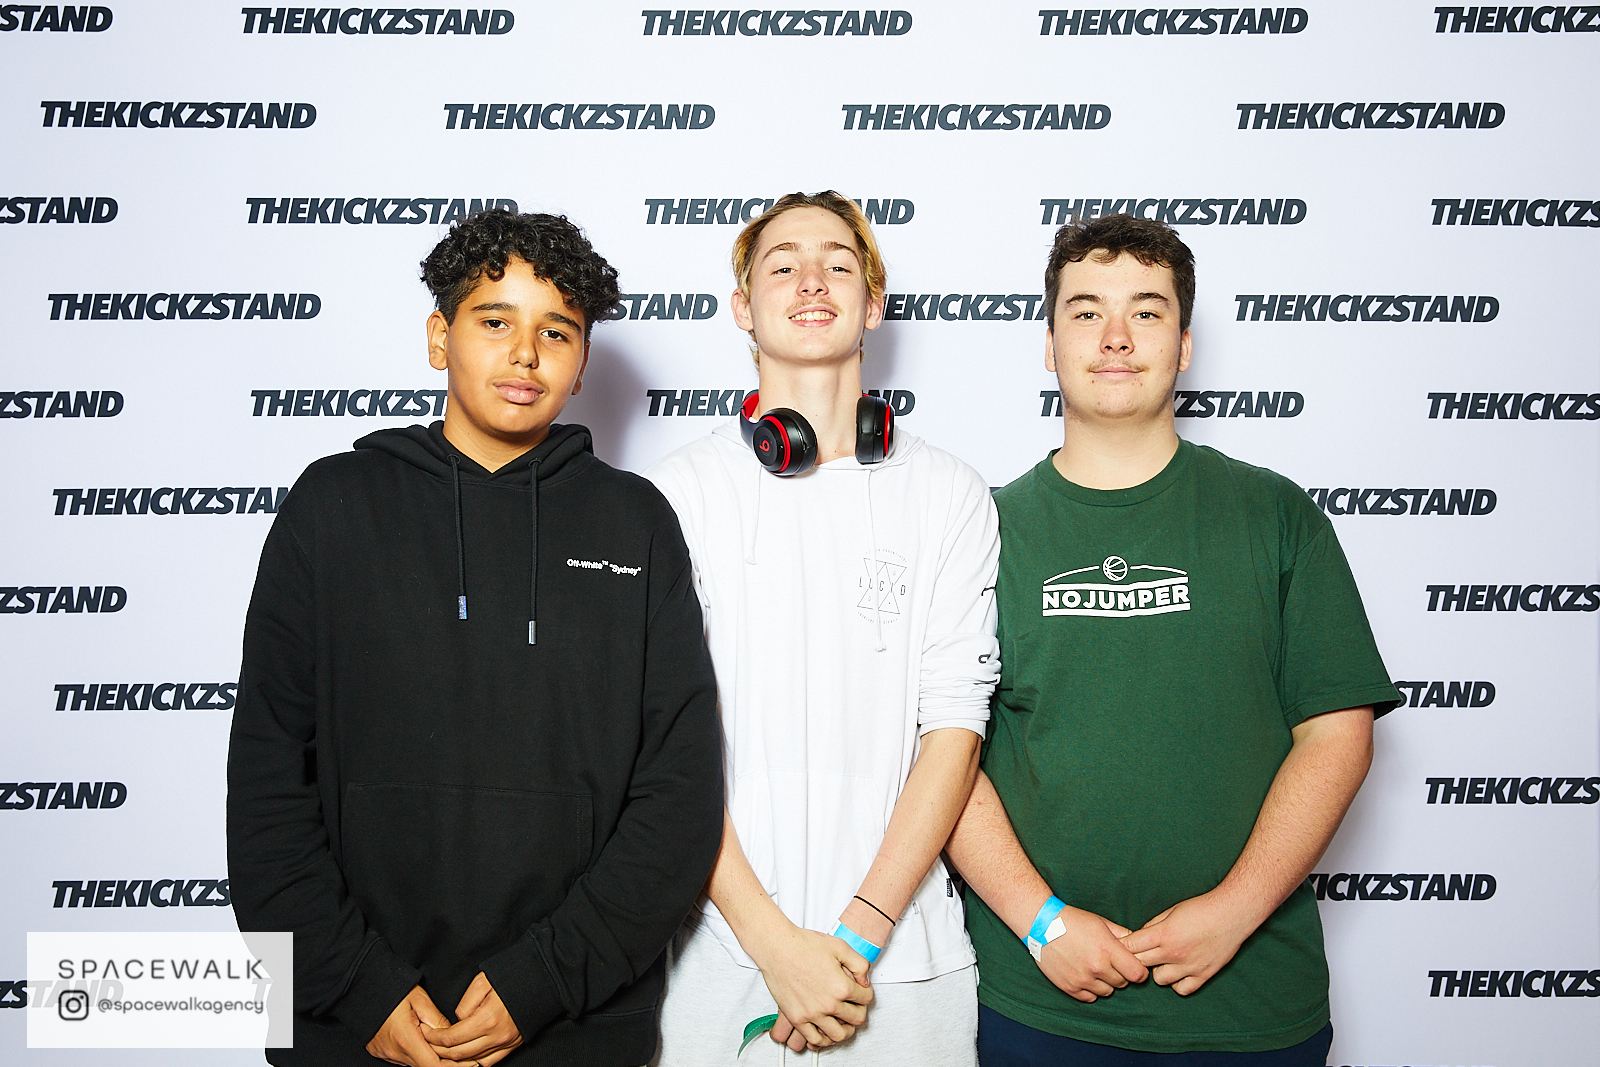 KICKZSTAND_BOOTH_037